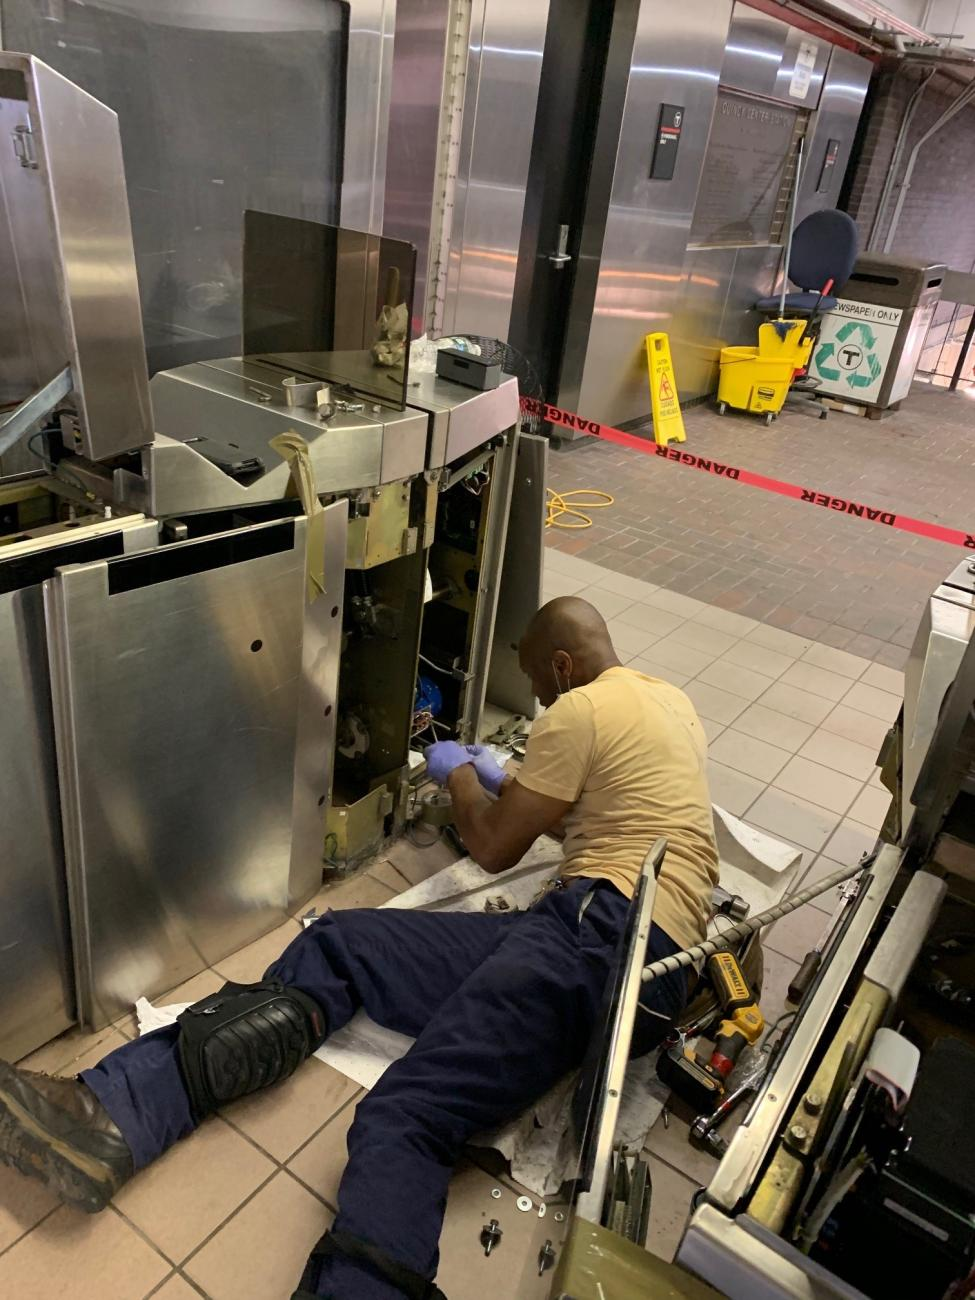 Man lays on the ground as he works to replace the fare gate at Quincy Center Station.